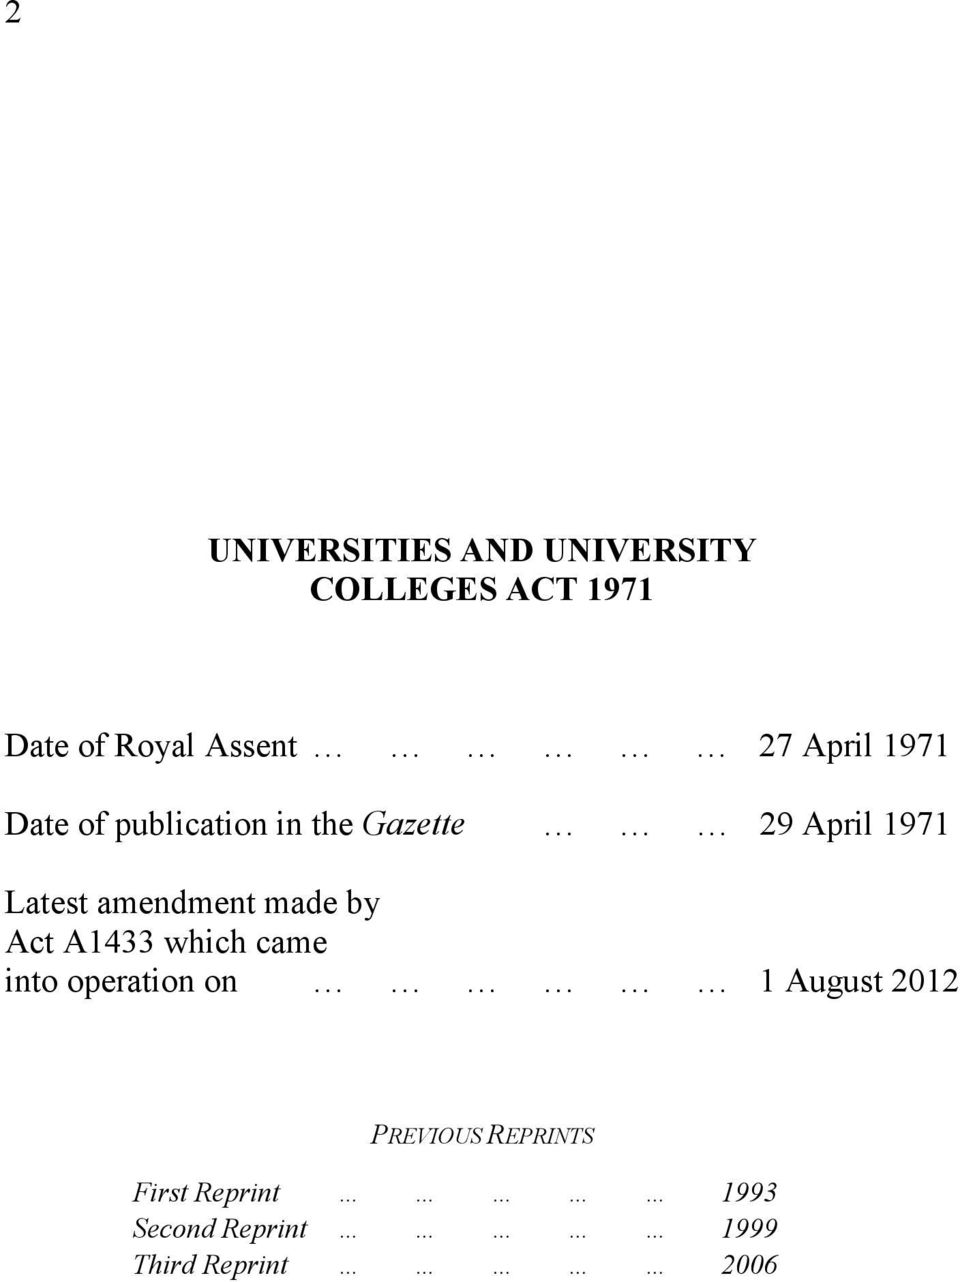 amendment made by Act A1433 which came into operation on 1 August 2012